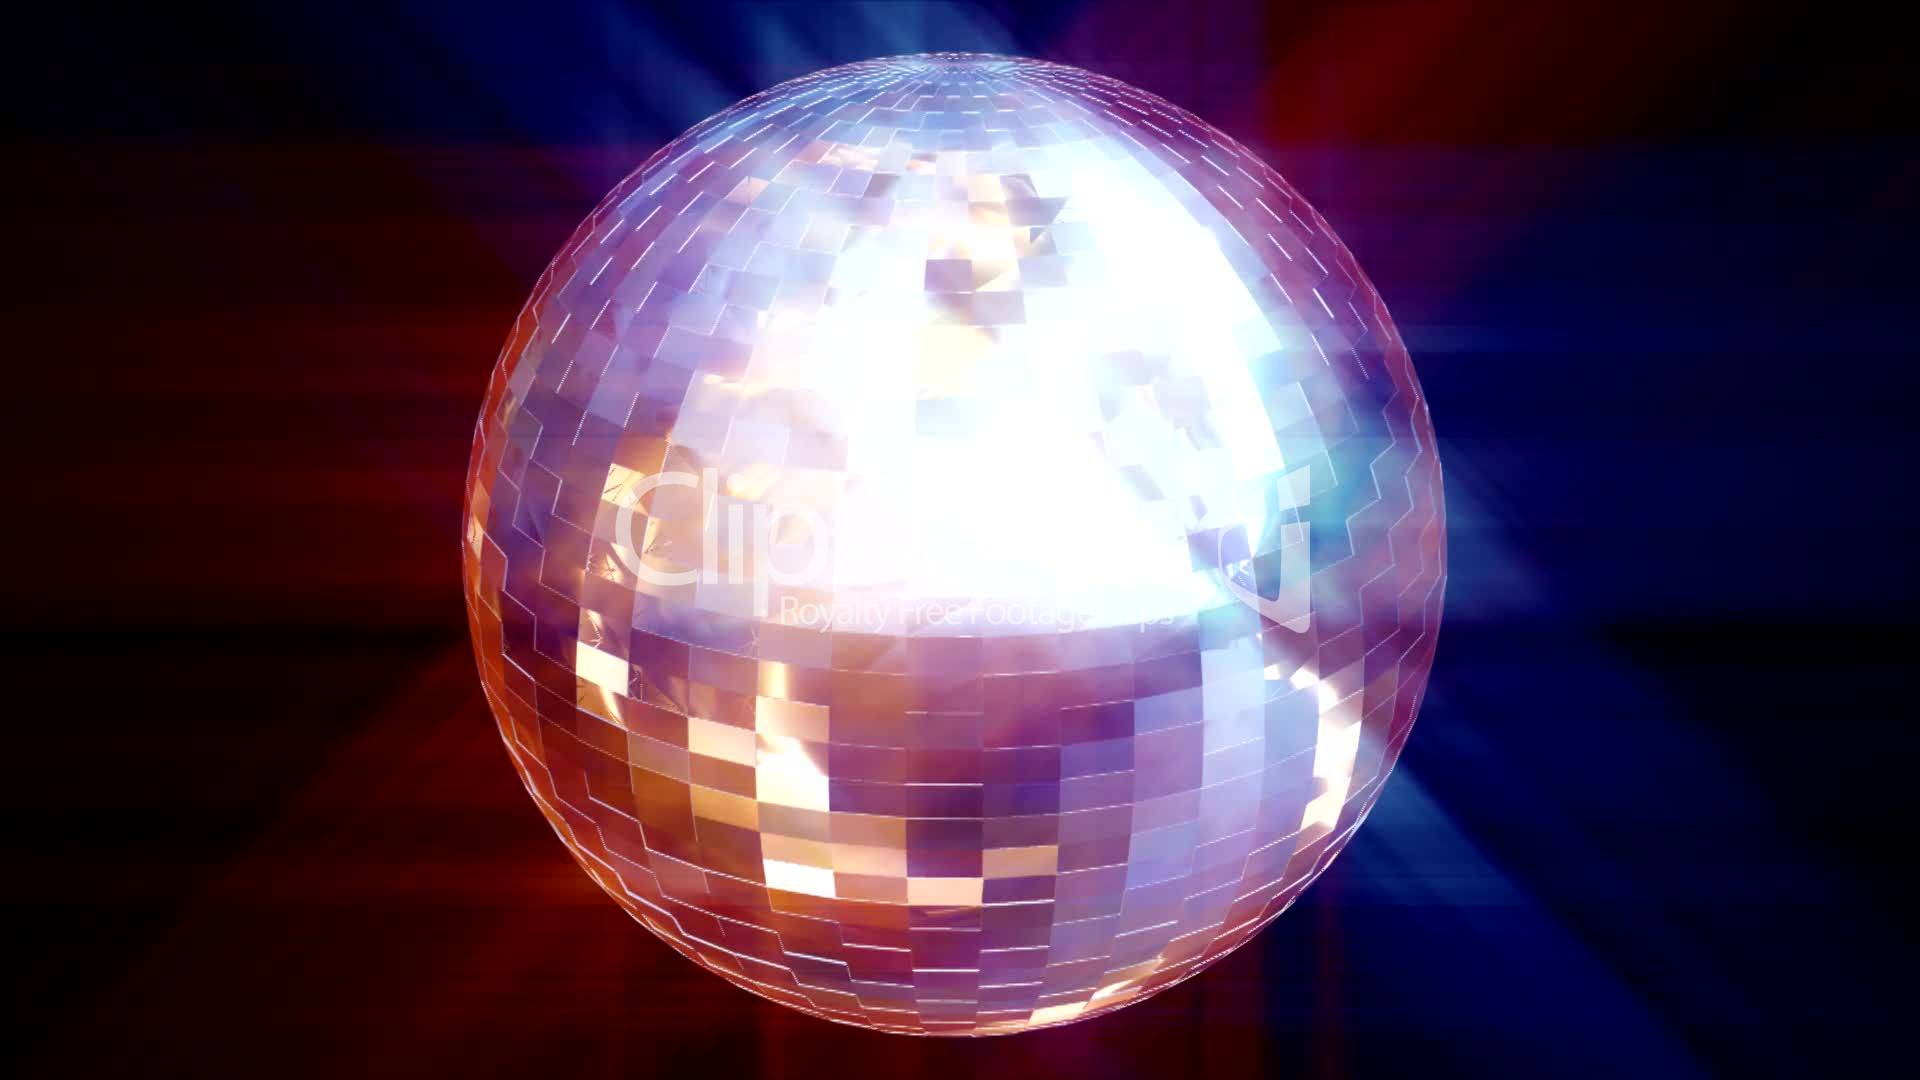 HD animated Disco Ball Royaltyfree video and stock footage